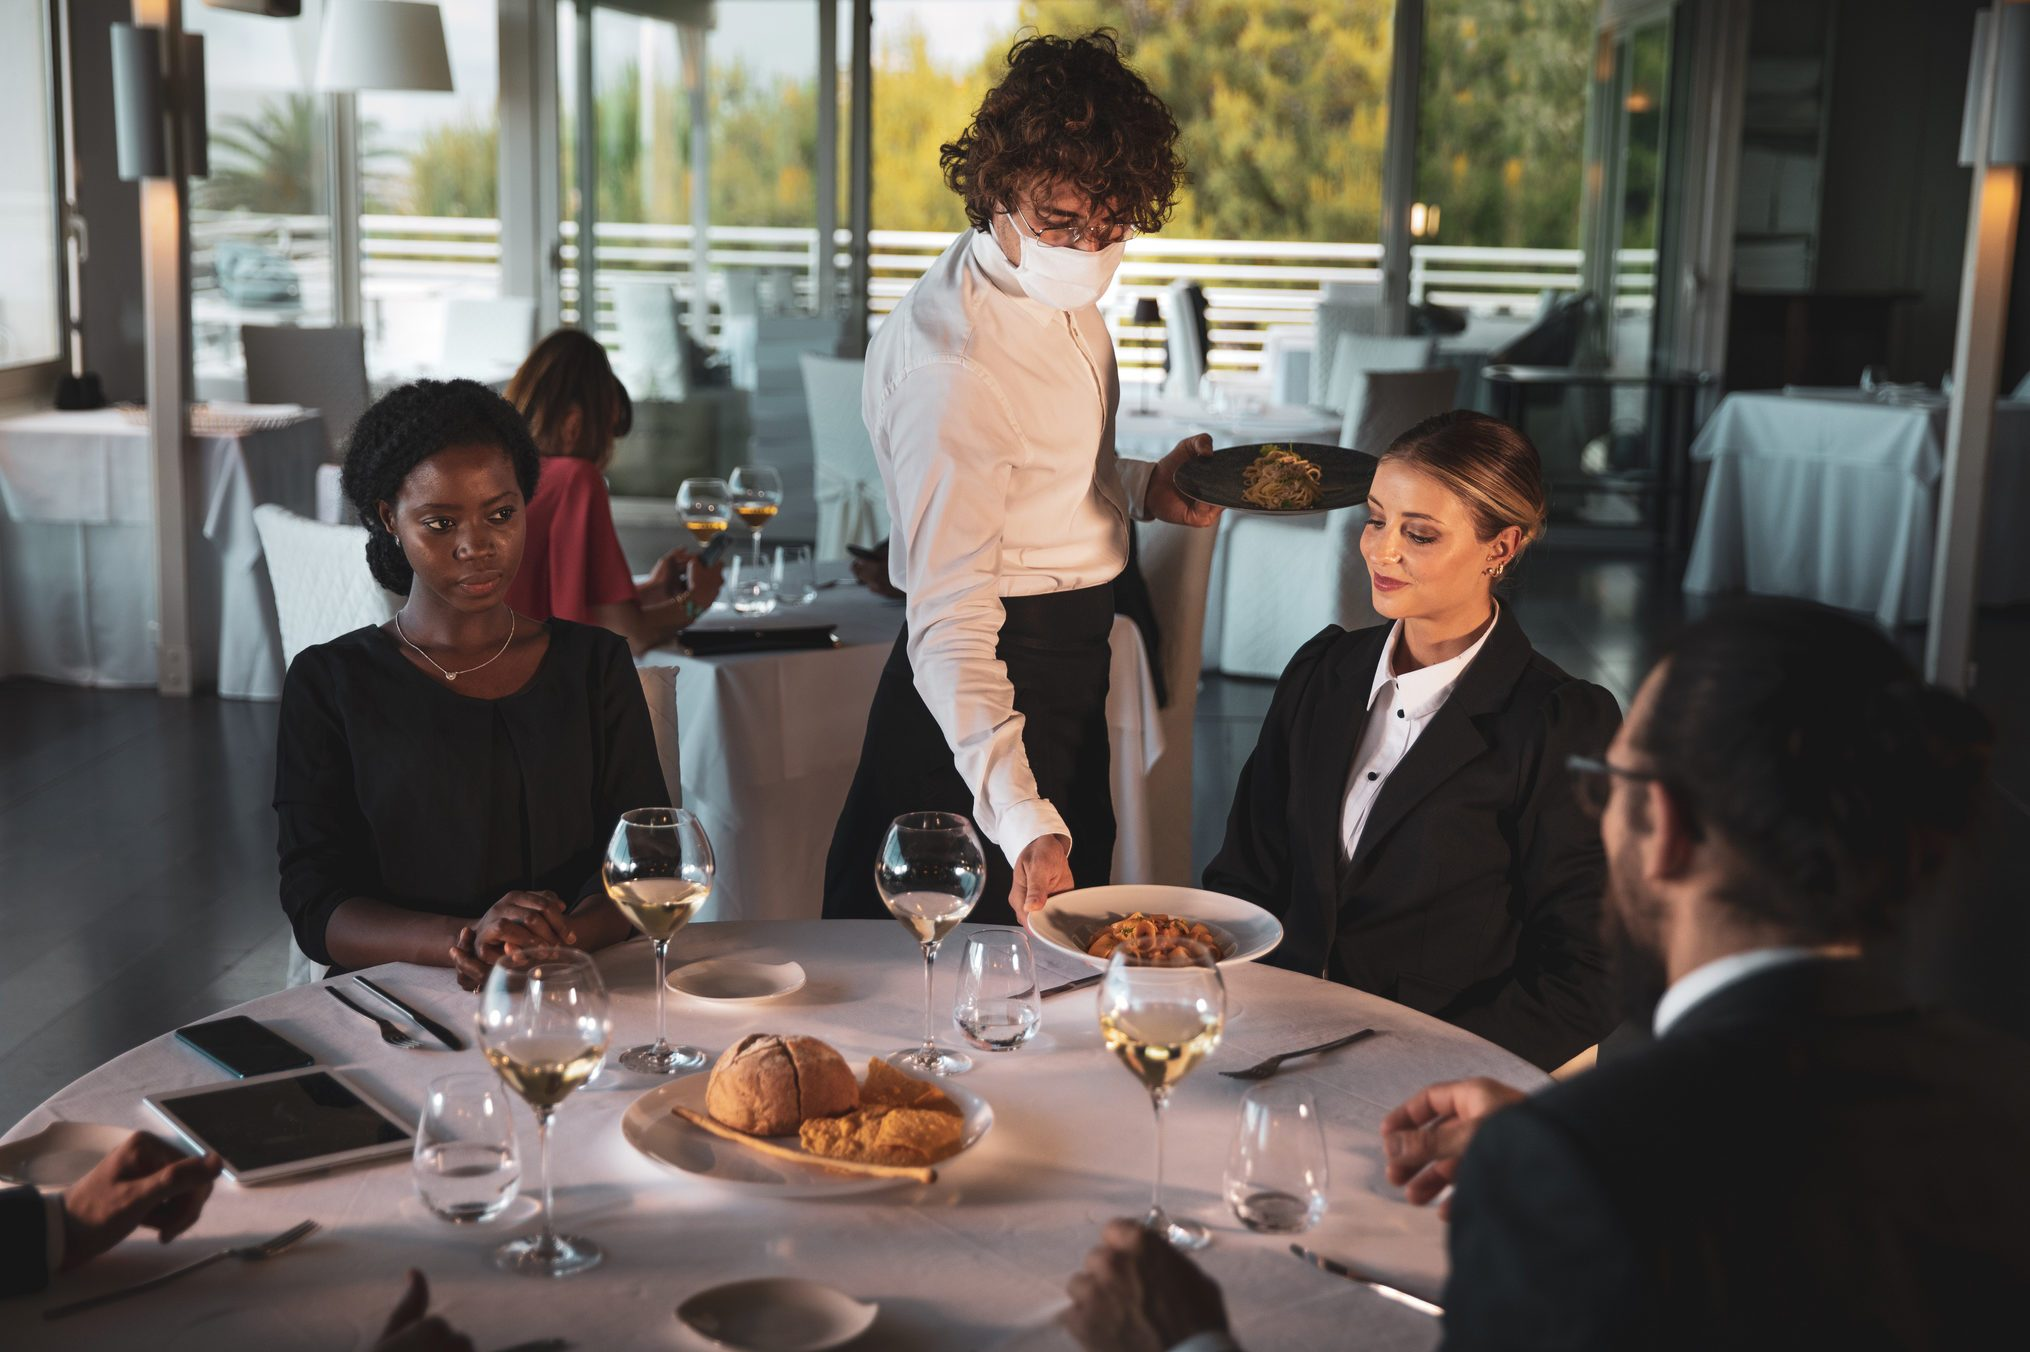 Waiter serving food in a luxury restaurant at a business people table